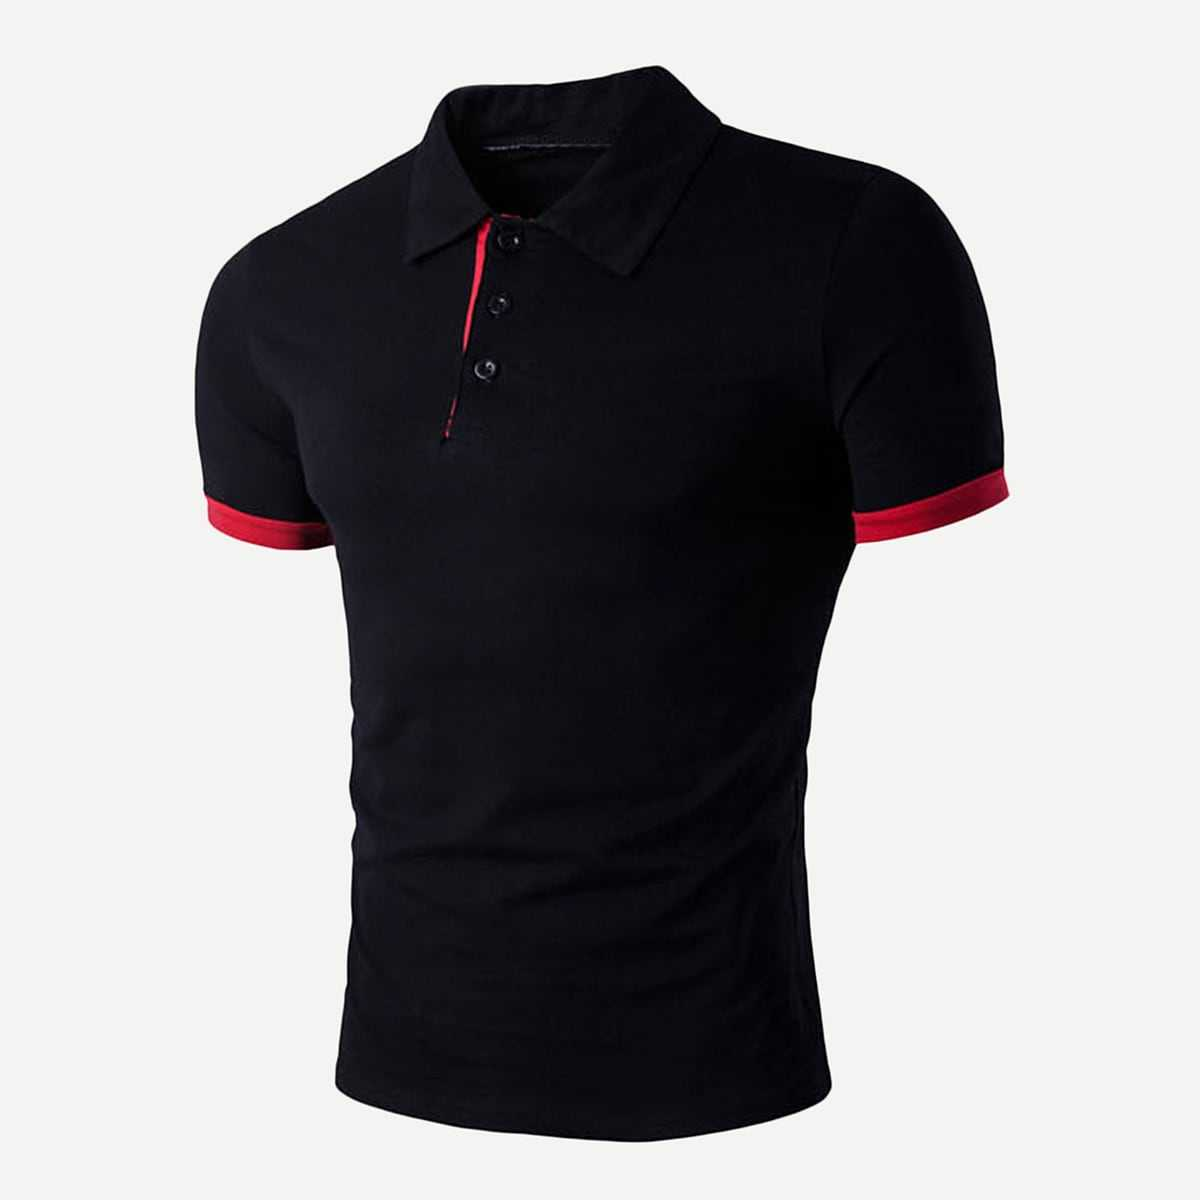 Guys Solid Polo Shirt in Black by ROMWE on GOOFASH